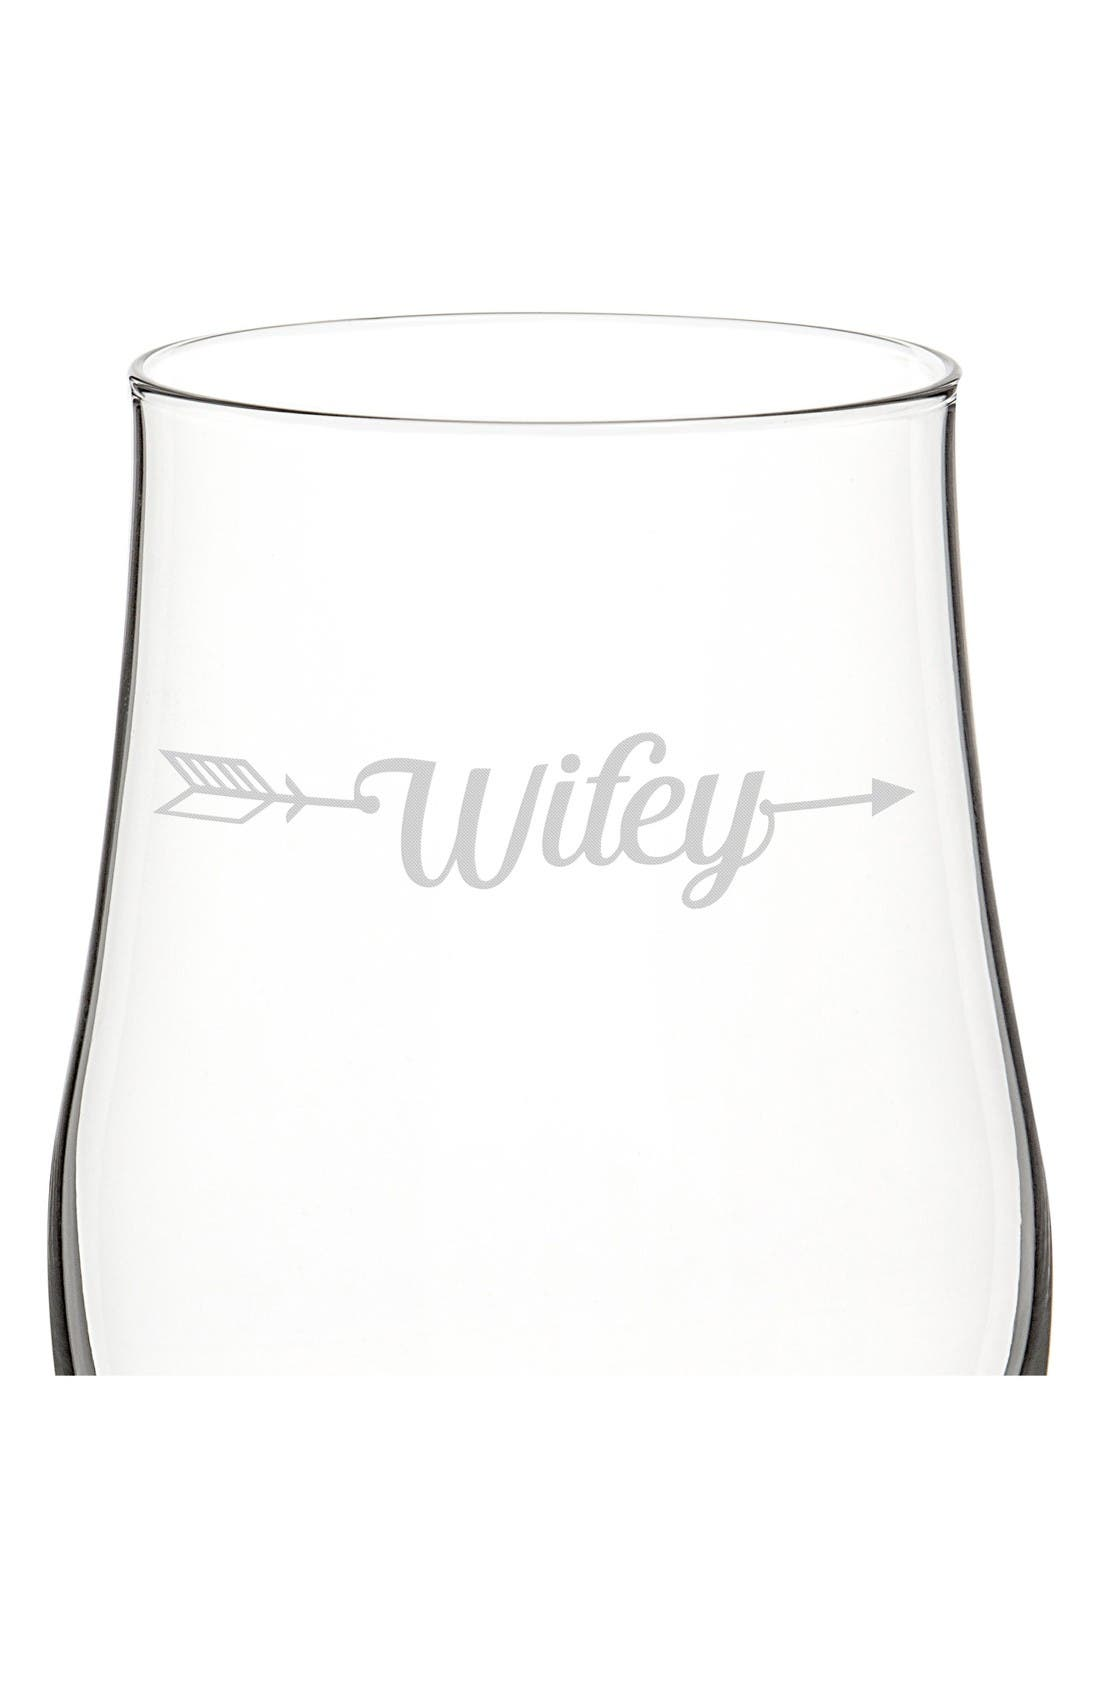 Hubby/Wifey Set of 2 Pilsner Glasses,                             Alternate thumbnail 3, color,                             Clear